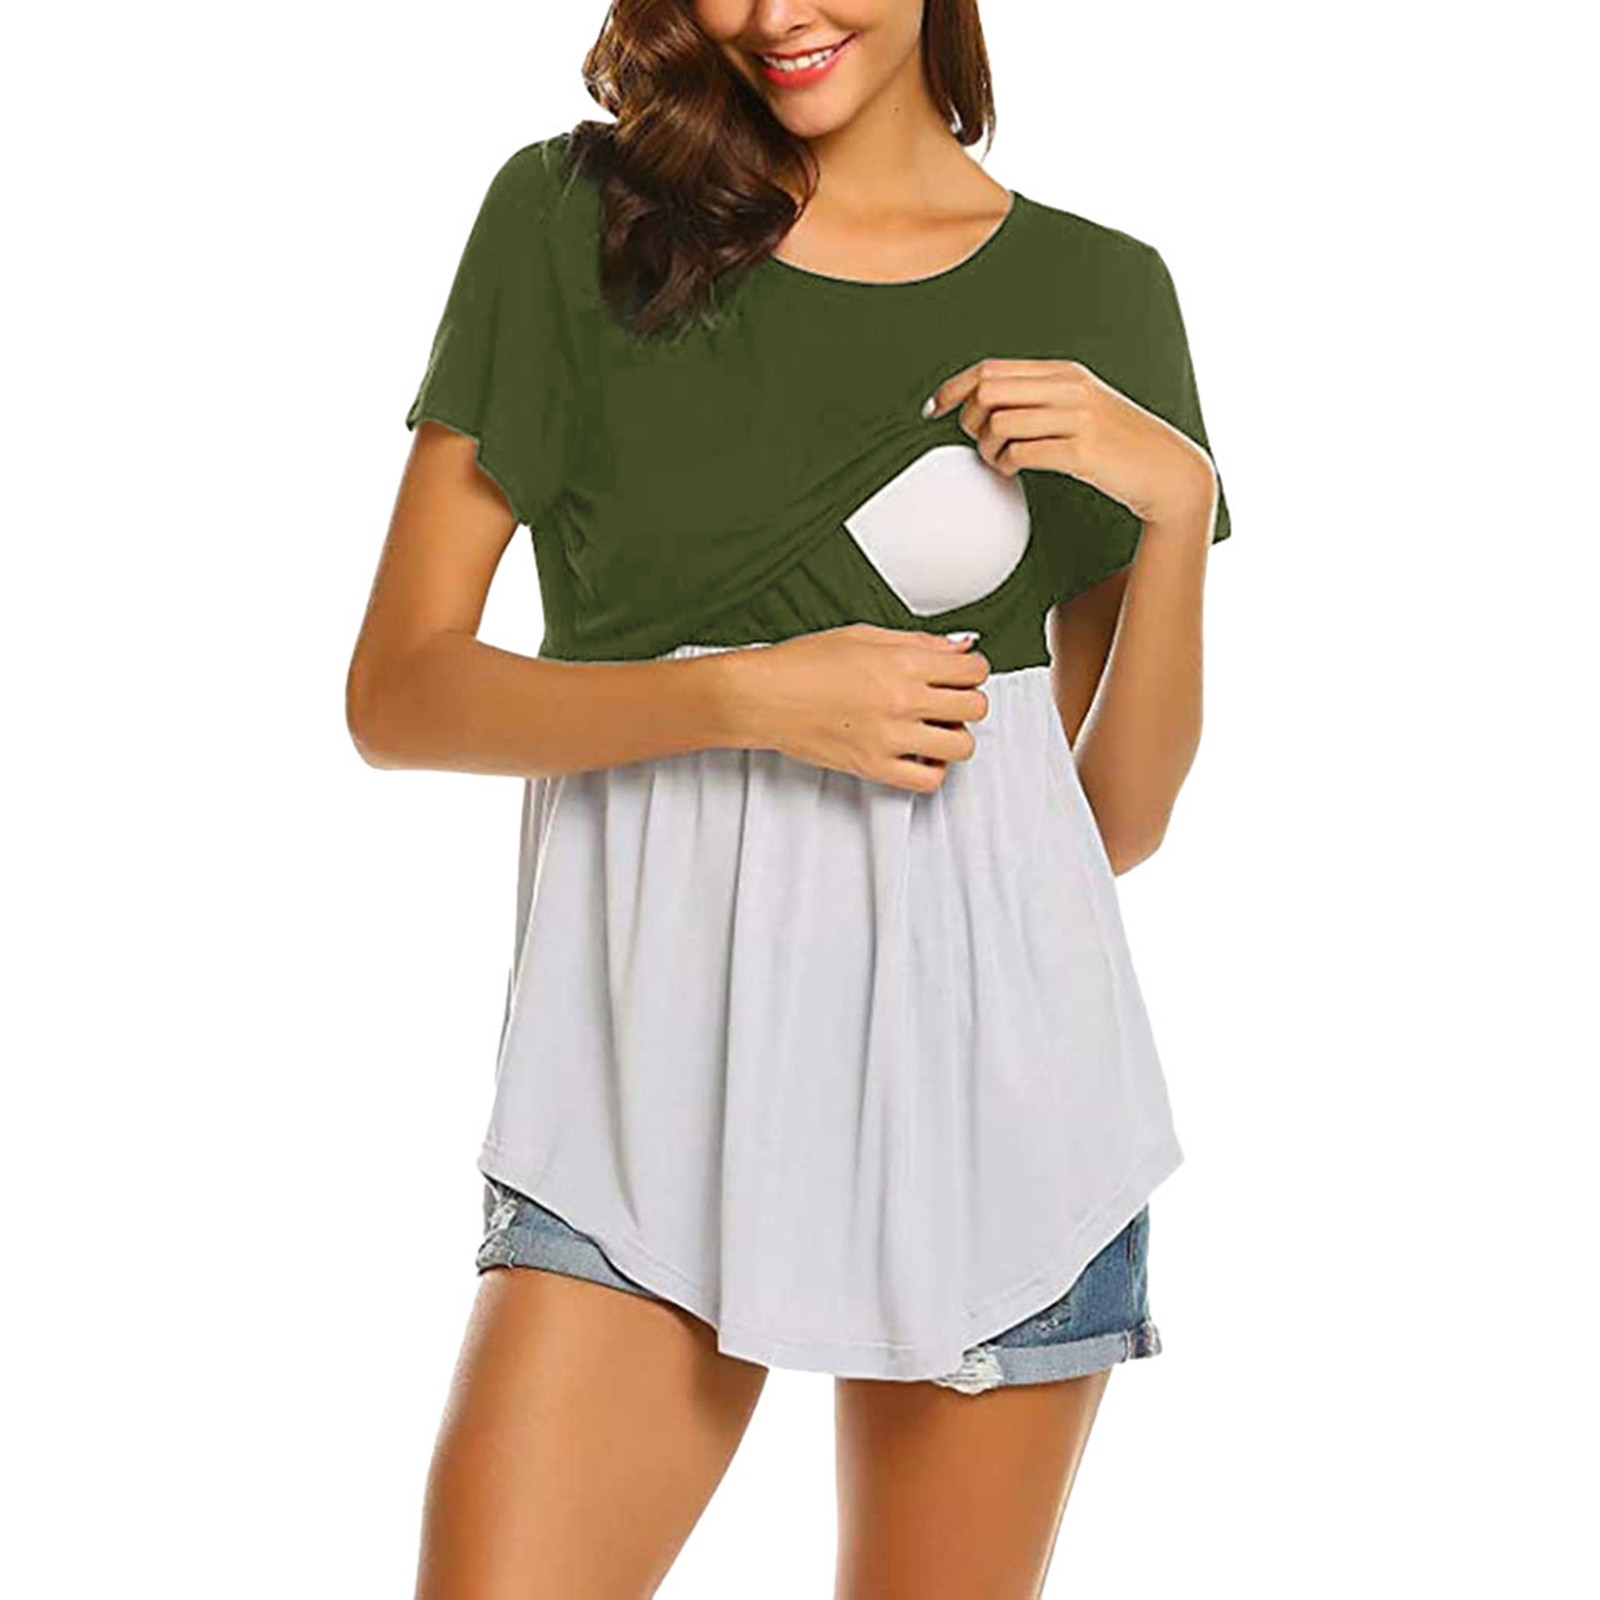 Maternity Short-Sleeved Summer Fashion Polyester Casual Stitching Round Neck Long-Sleeved Nursing Top Breastfeeding Clothes F4